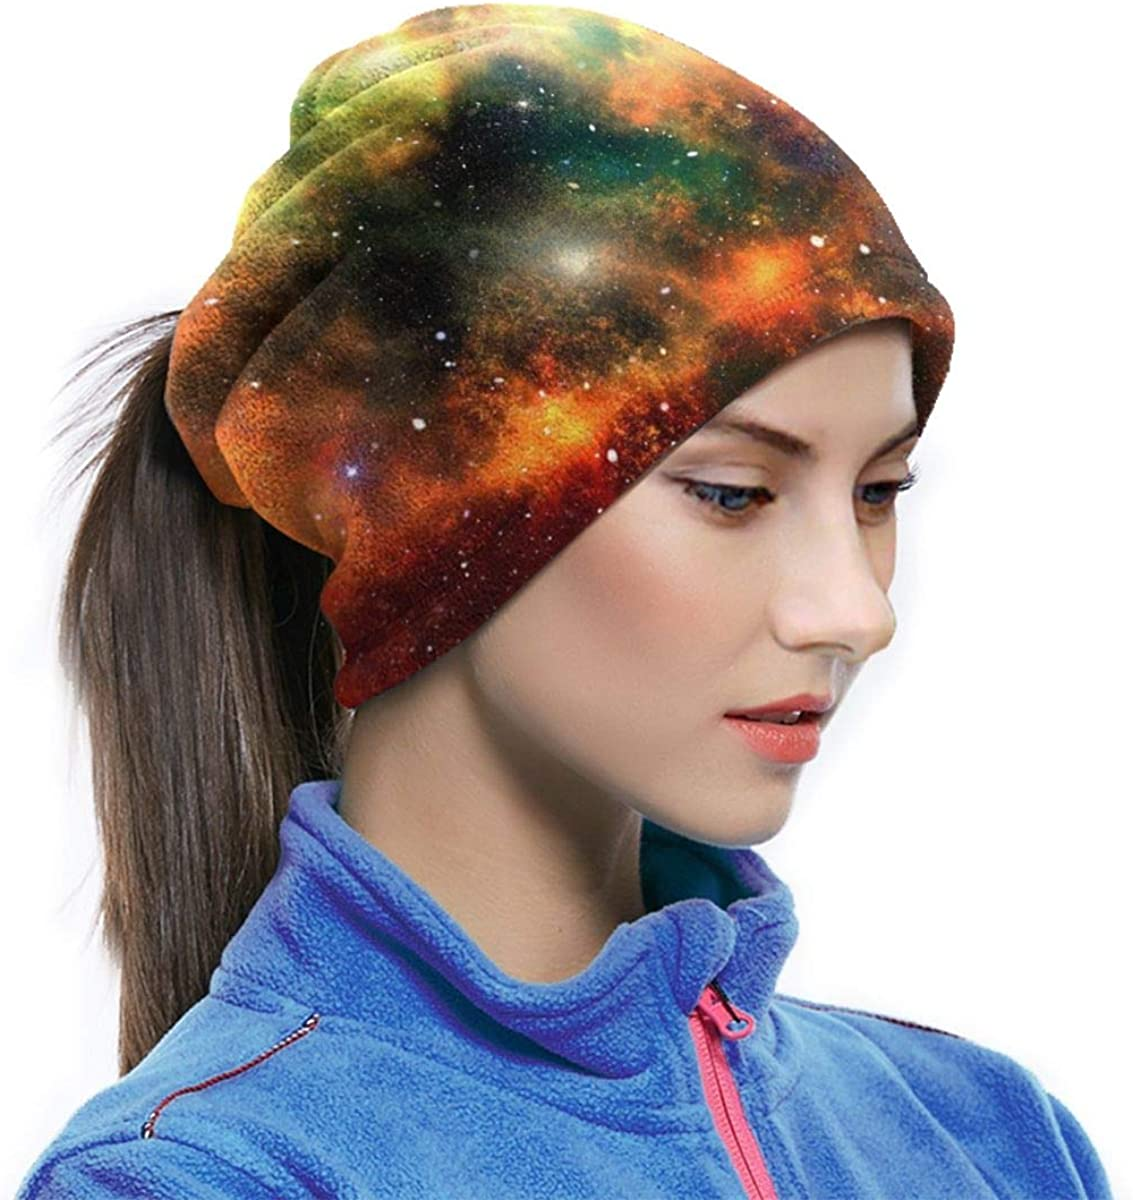 Multicolored Star Painting Mask Seamless Neck Gaiter Shield Scarf Bandana Face Mask Seamless UV Protection For Motorcycle Cycling Riding Running Headbands